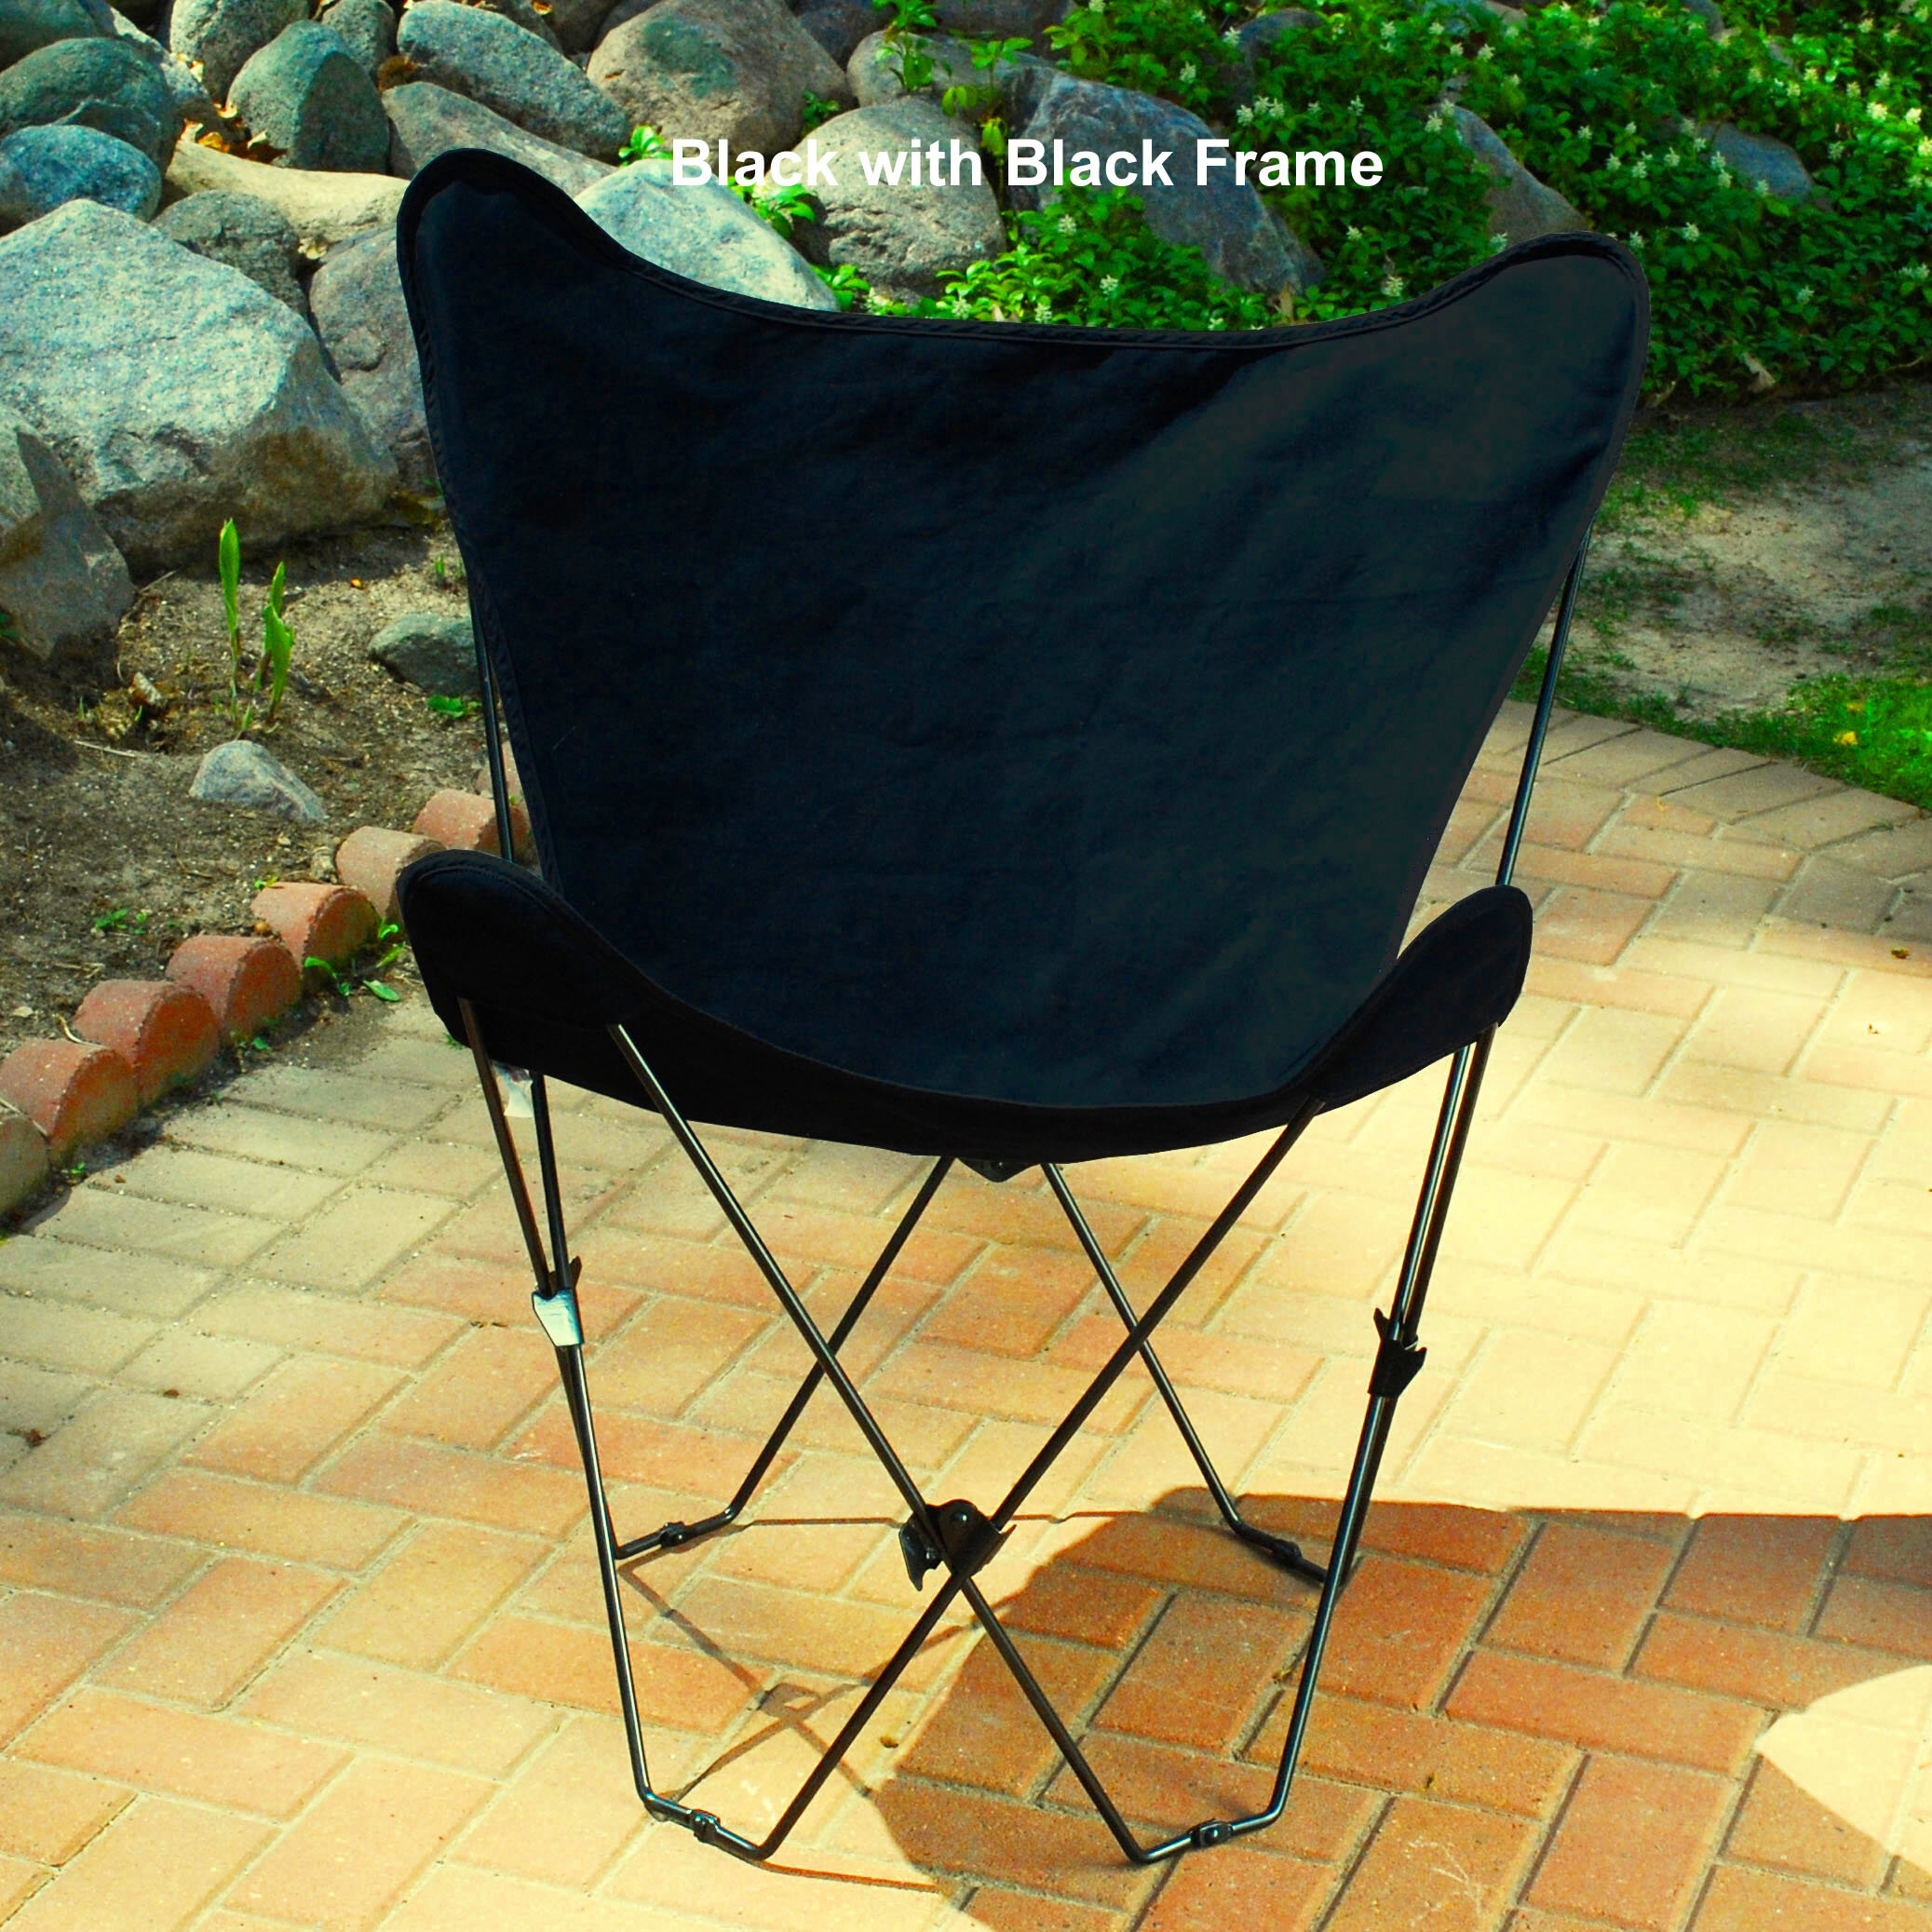 Retro Folding Butterfly Chair And Ebony Black Cover With Black Frame